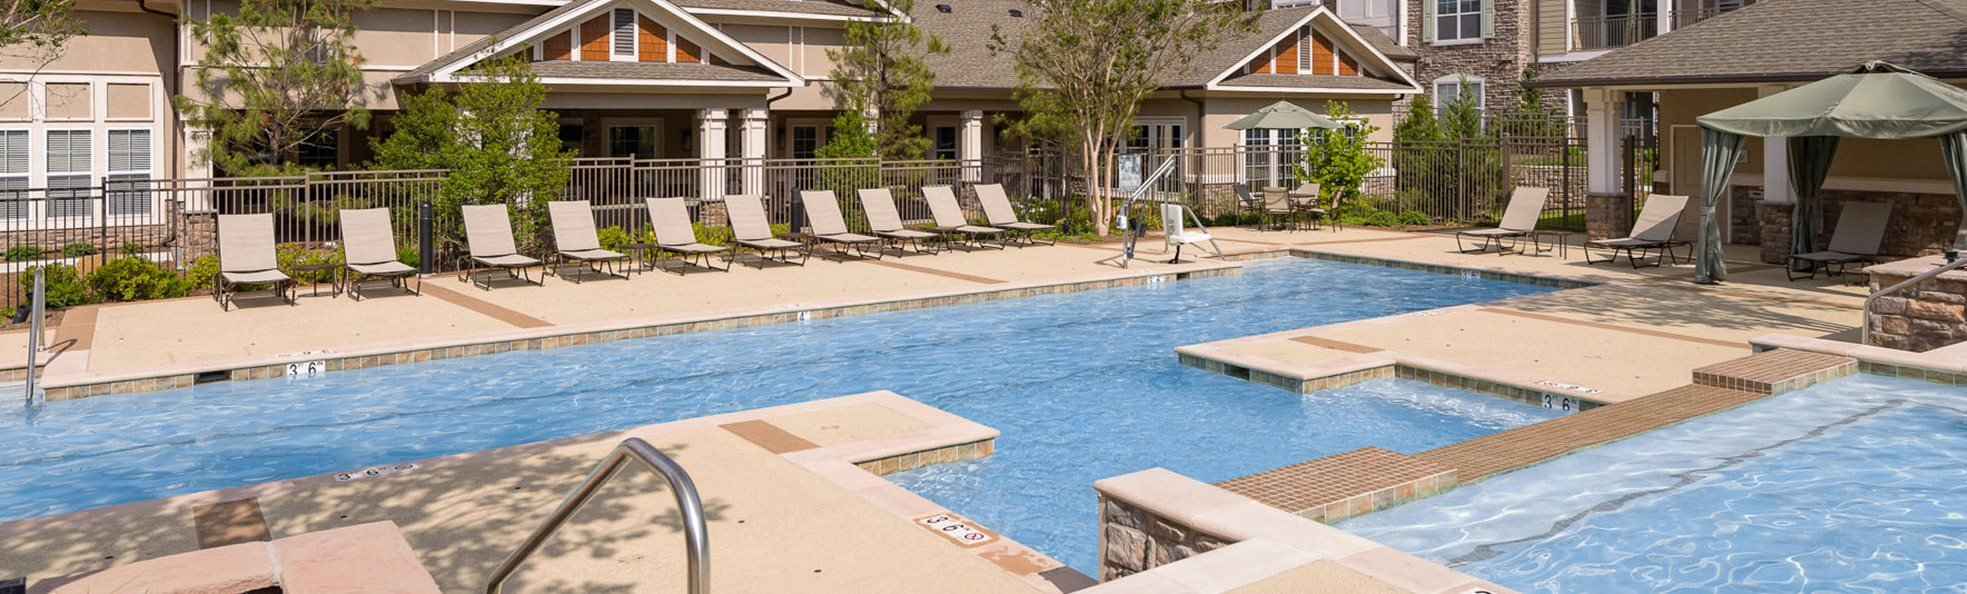 Pool area at the Atley on the Green Apartment in Ashburn, VA